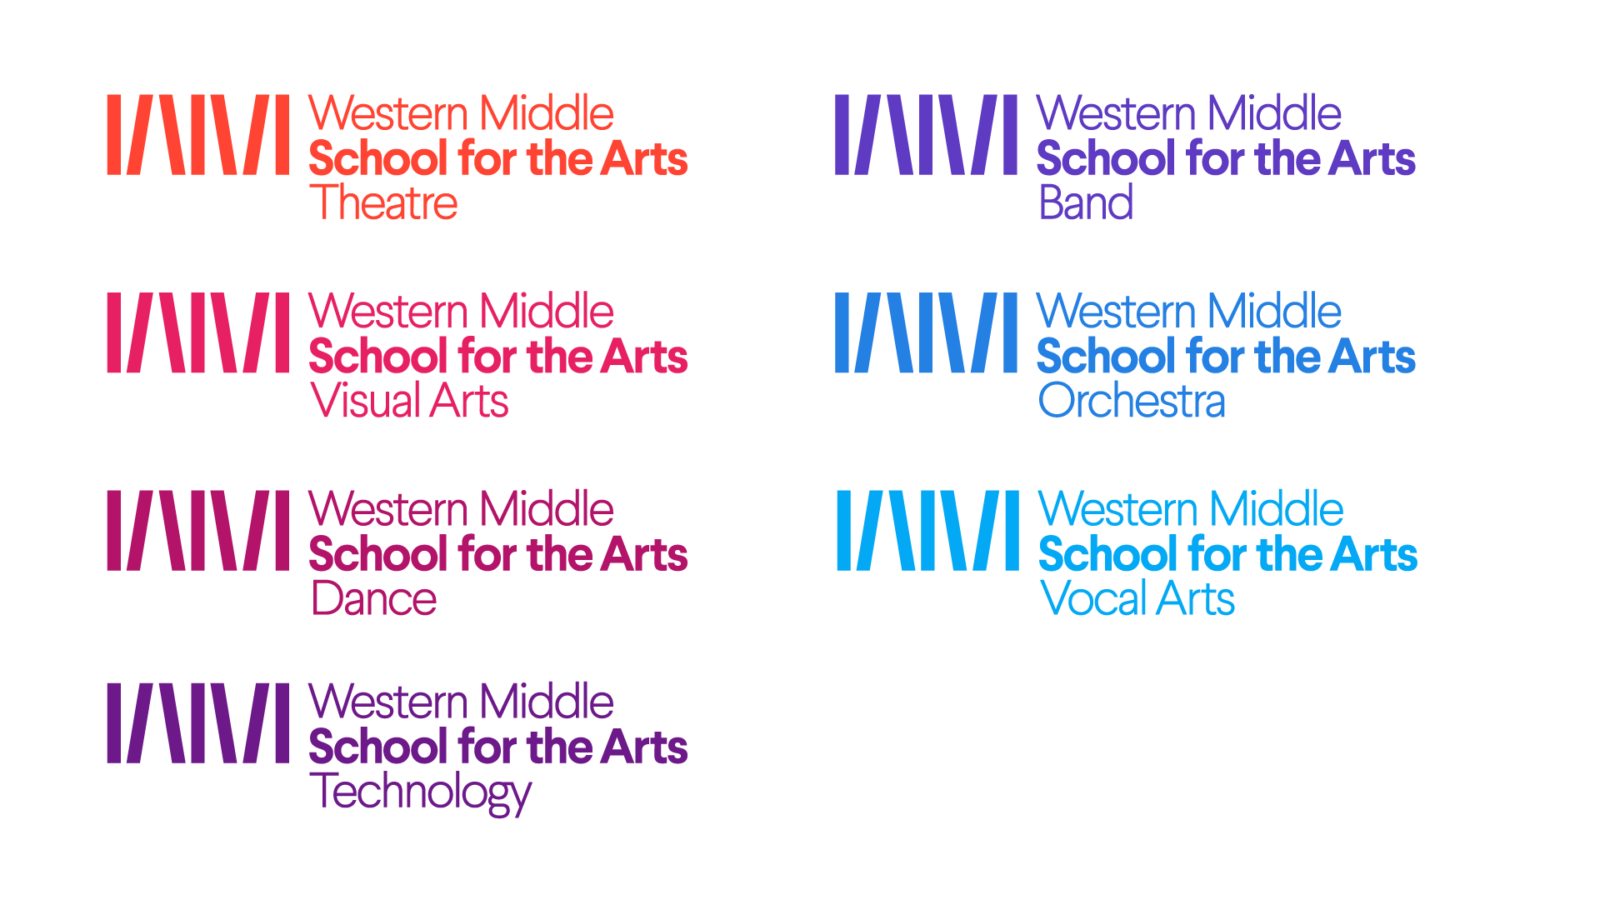 Brand family logo set for Western Middle School for the Arts, a Louisville performing arts school